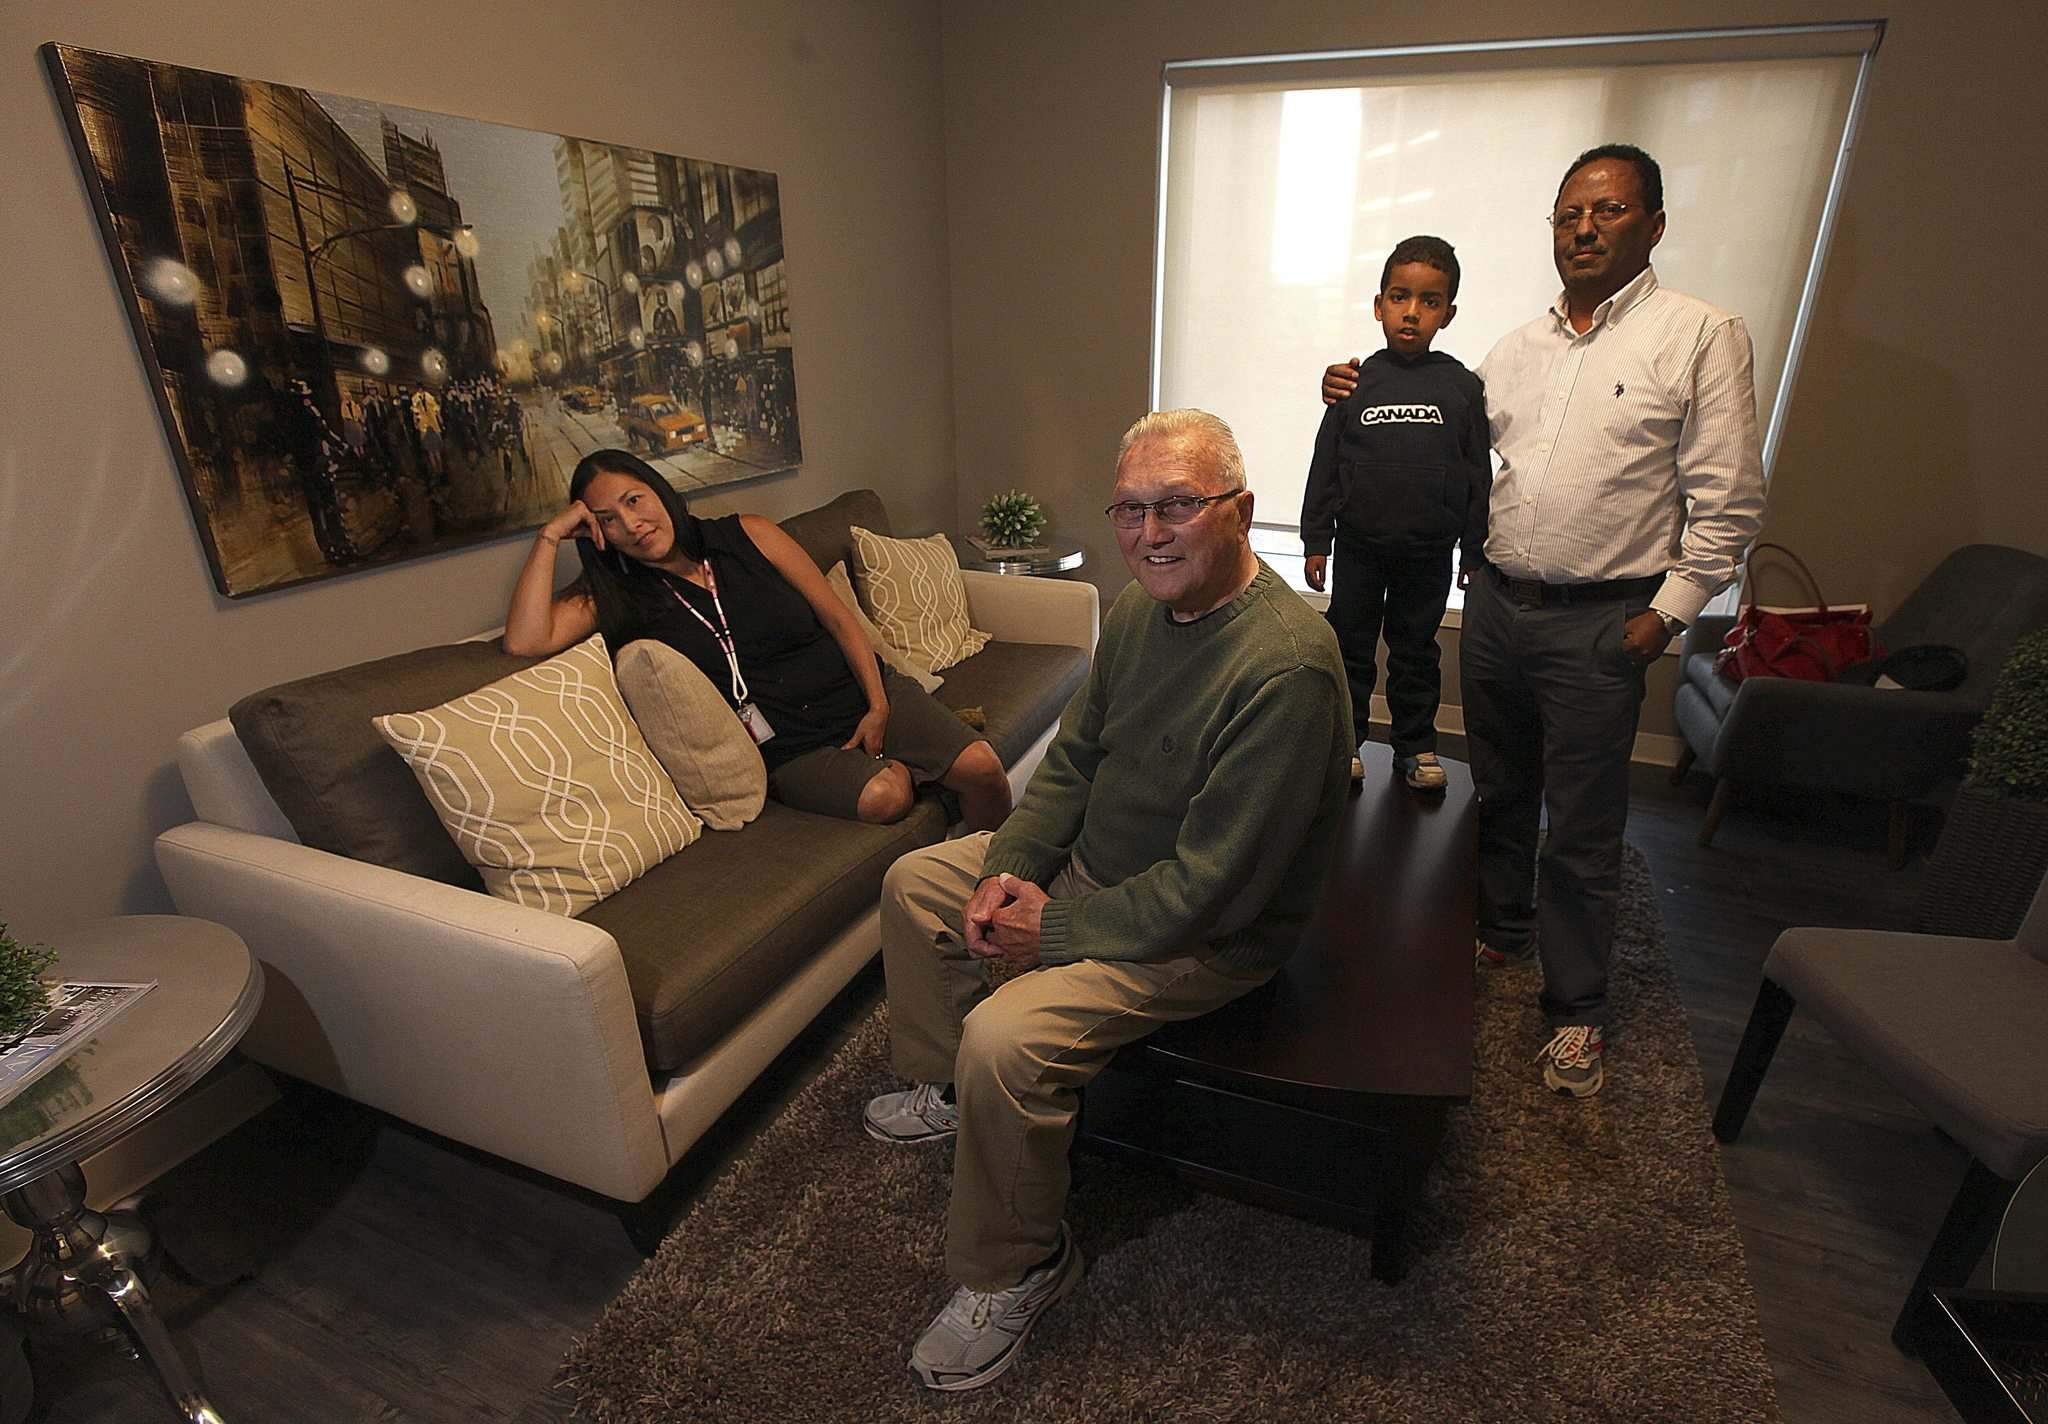 PHIL HOSSACK / WINNIPEG FREE PRESS</p><p>Angela Lavallee (from left), Eldon Toews, five-year-old Ewun Kidane and his father, Airia Kidane, are a few of the diverse tenants of the Downtown Commons.</p></p>